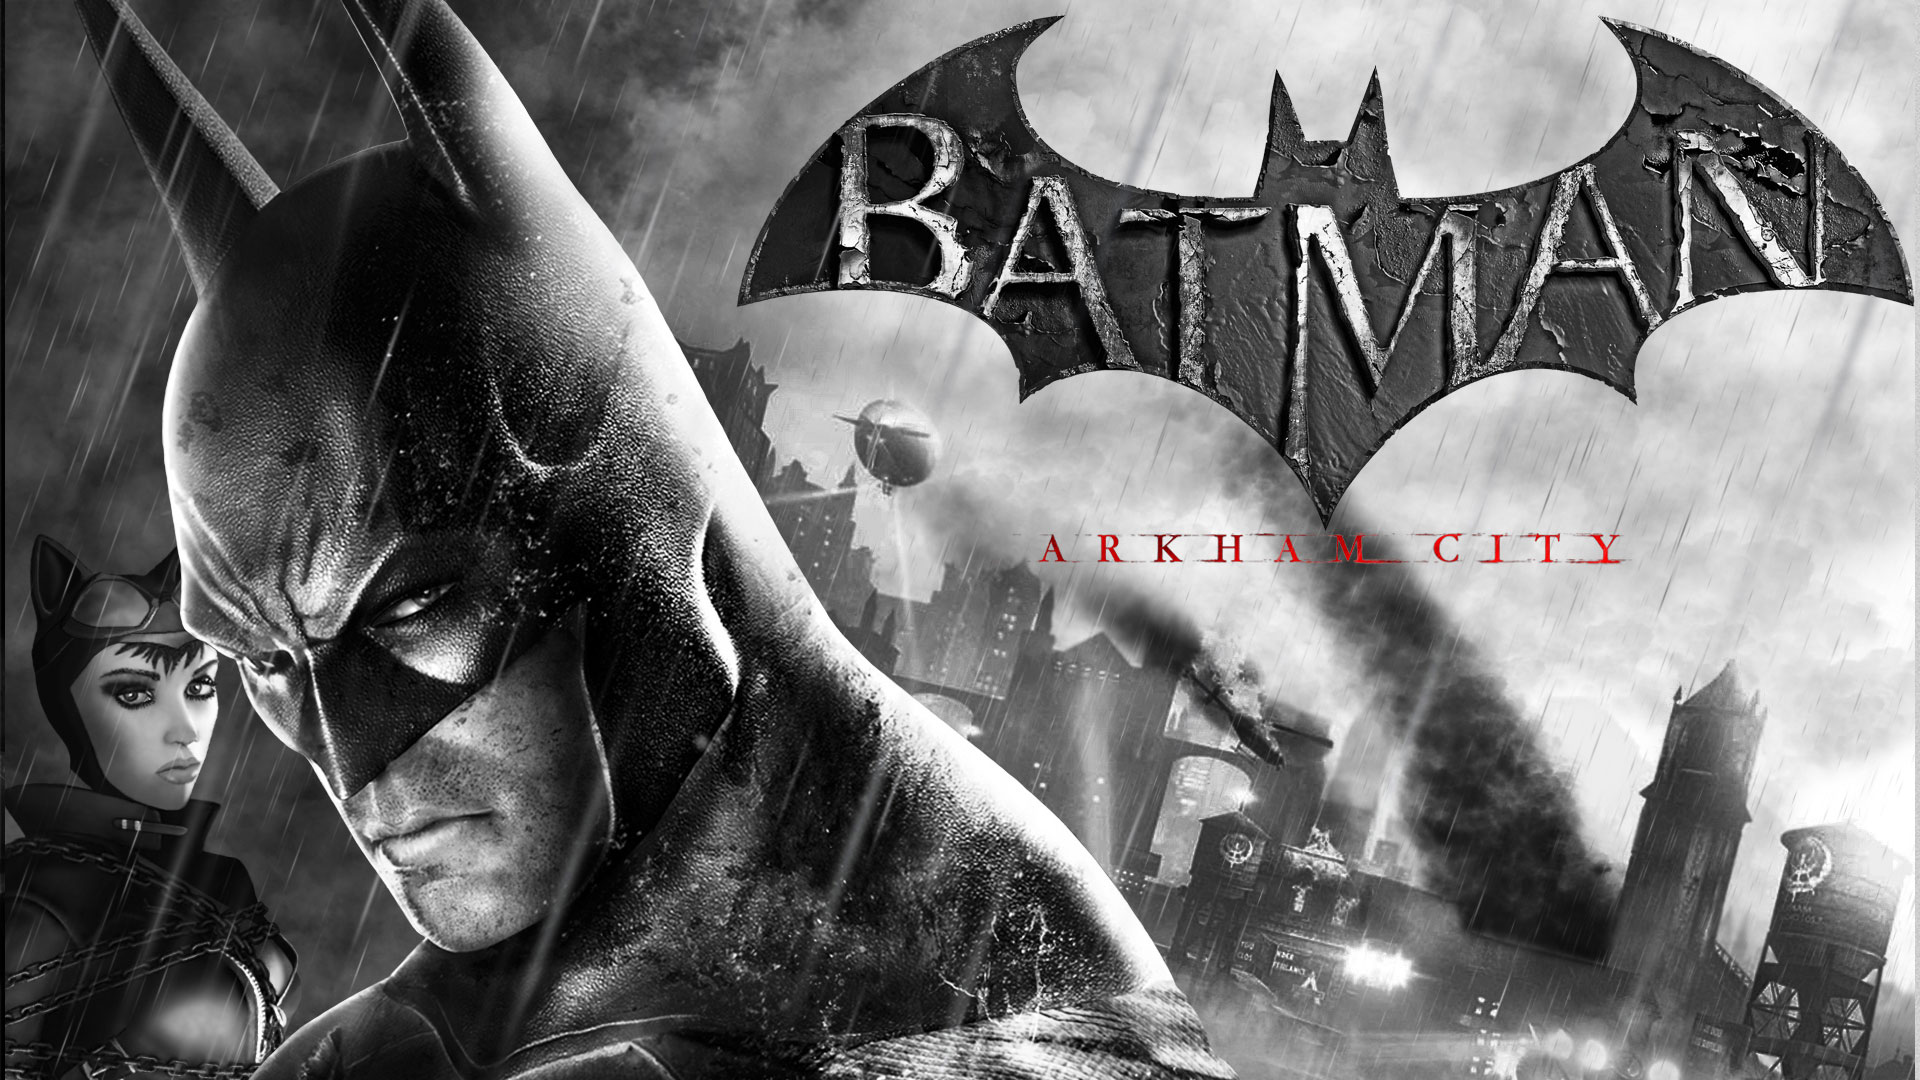 Batman Arkham City Wallpaper Hd 1080p Skinny #17598 Hd